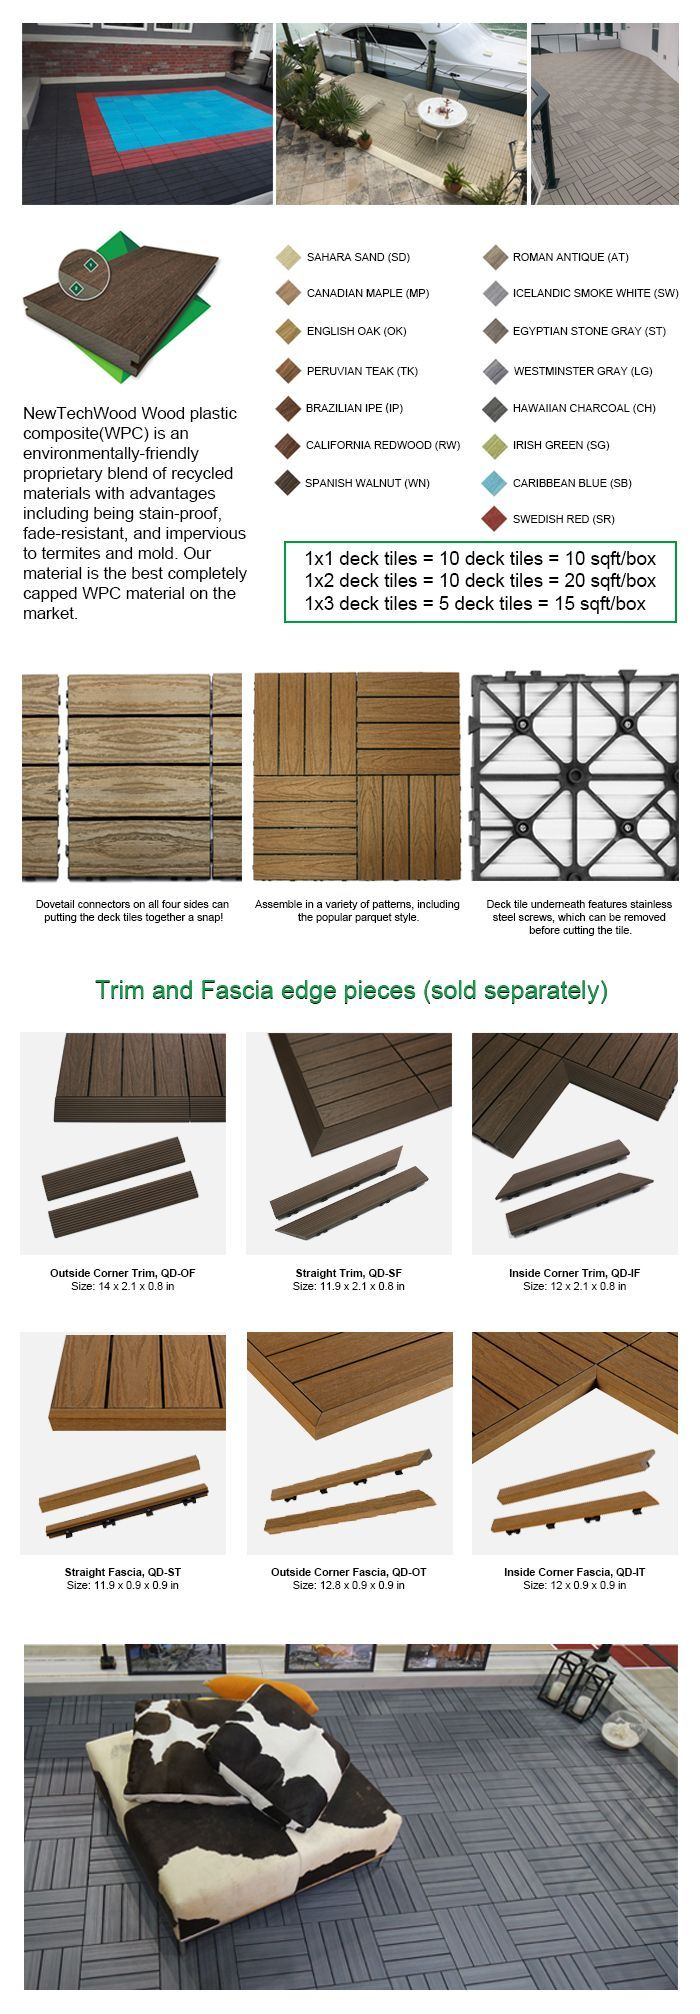 Newtechwood 1 12 Fuss X 1 Fuss Quick Deck Composite Deck Fliese Straight Fascia In Sahara Sand 4 Teilig Box Deck Tile Composite Decking Outdoor Deck Tiles